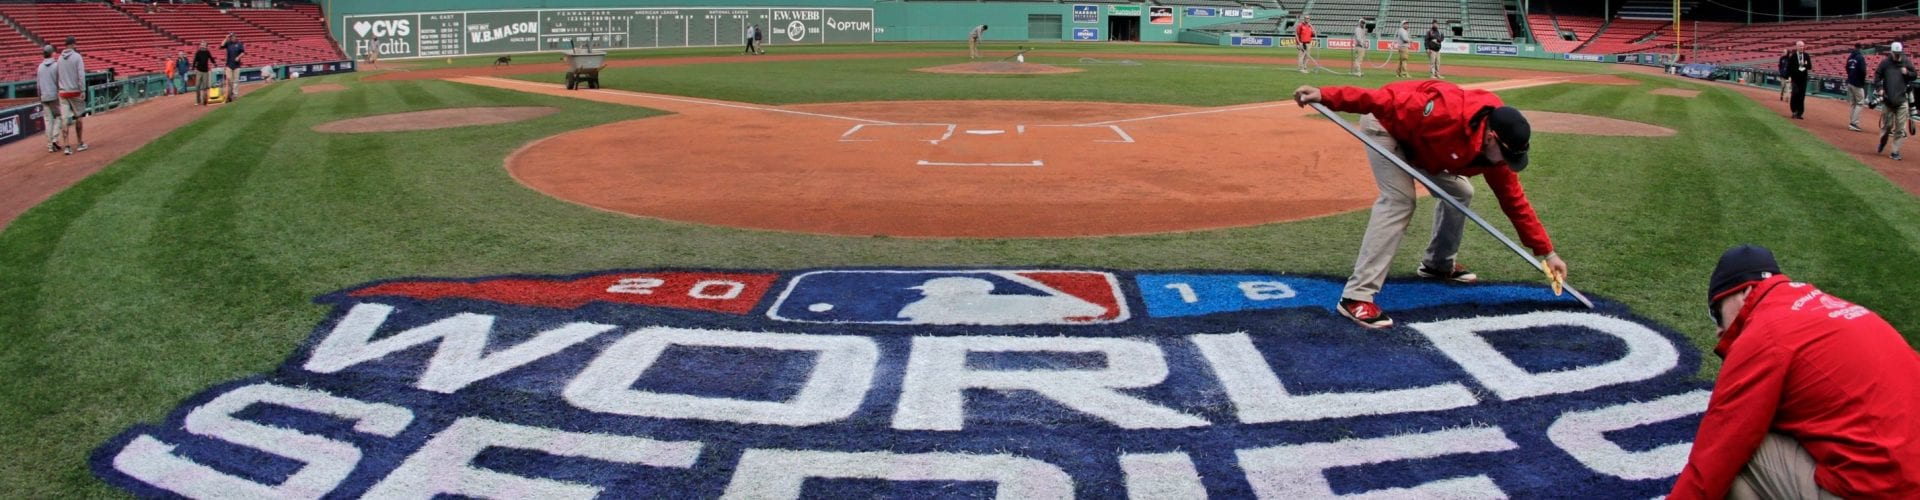 World Series Dominates Mid-Week Best-Selling Events